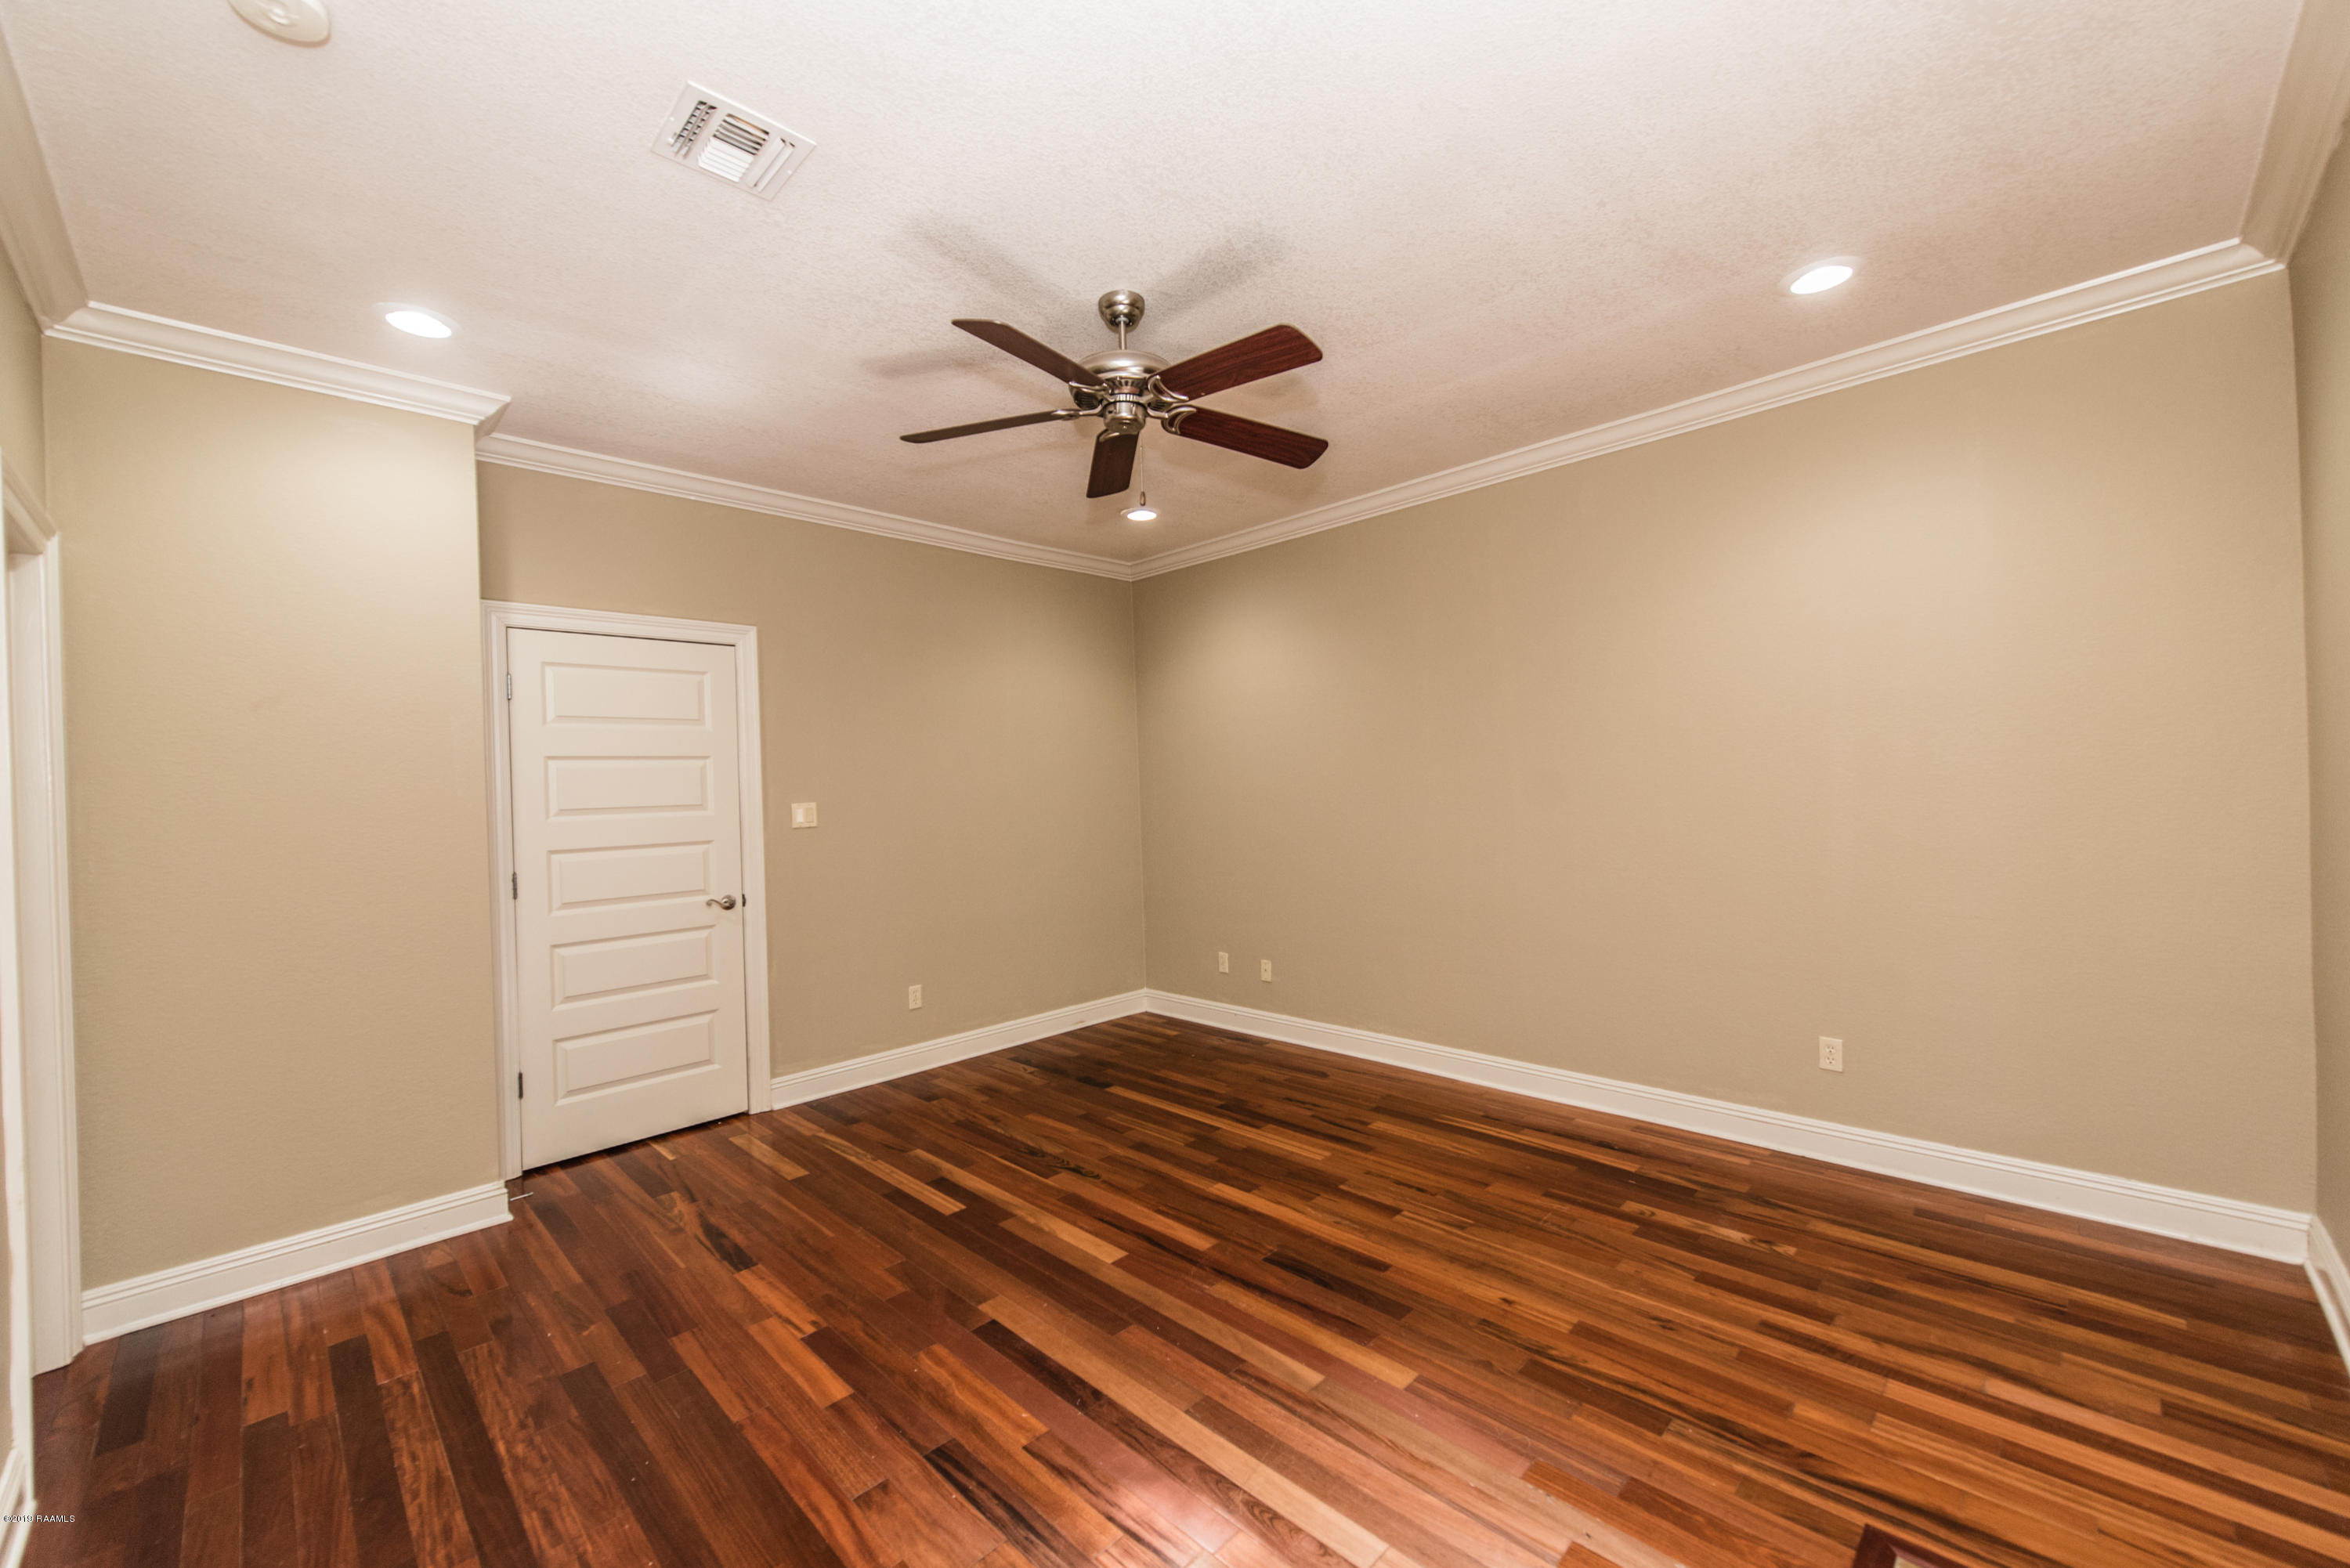 120 Ambiance Circle, Lafayette, LA 70508 Photo #10